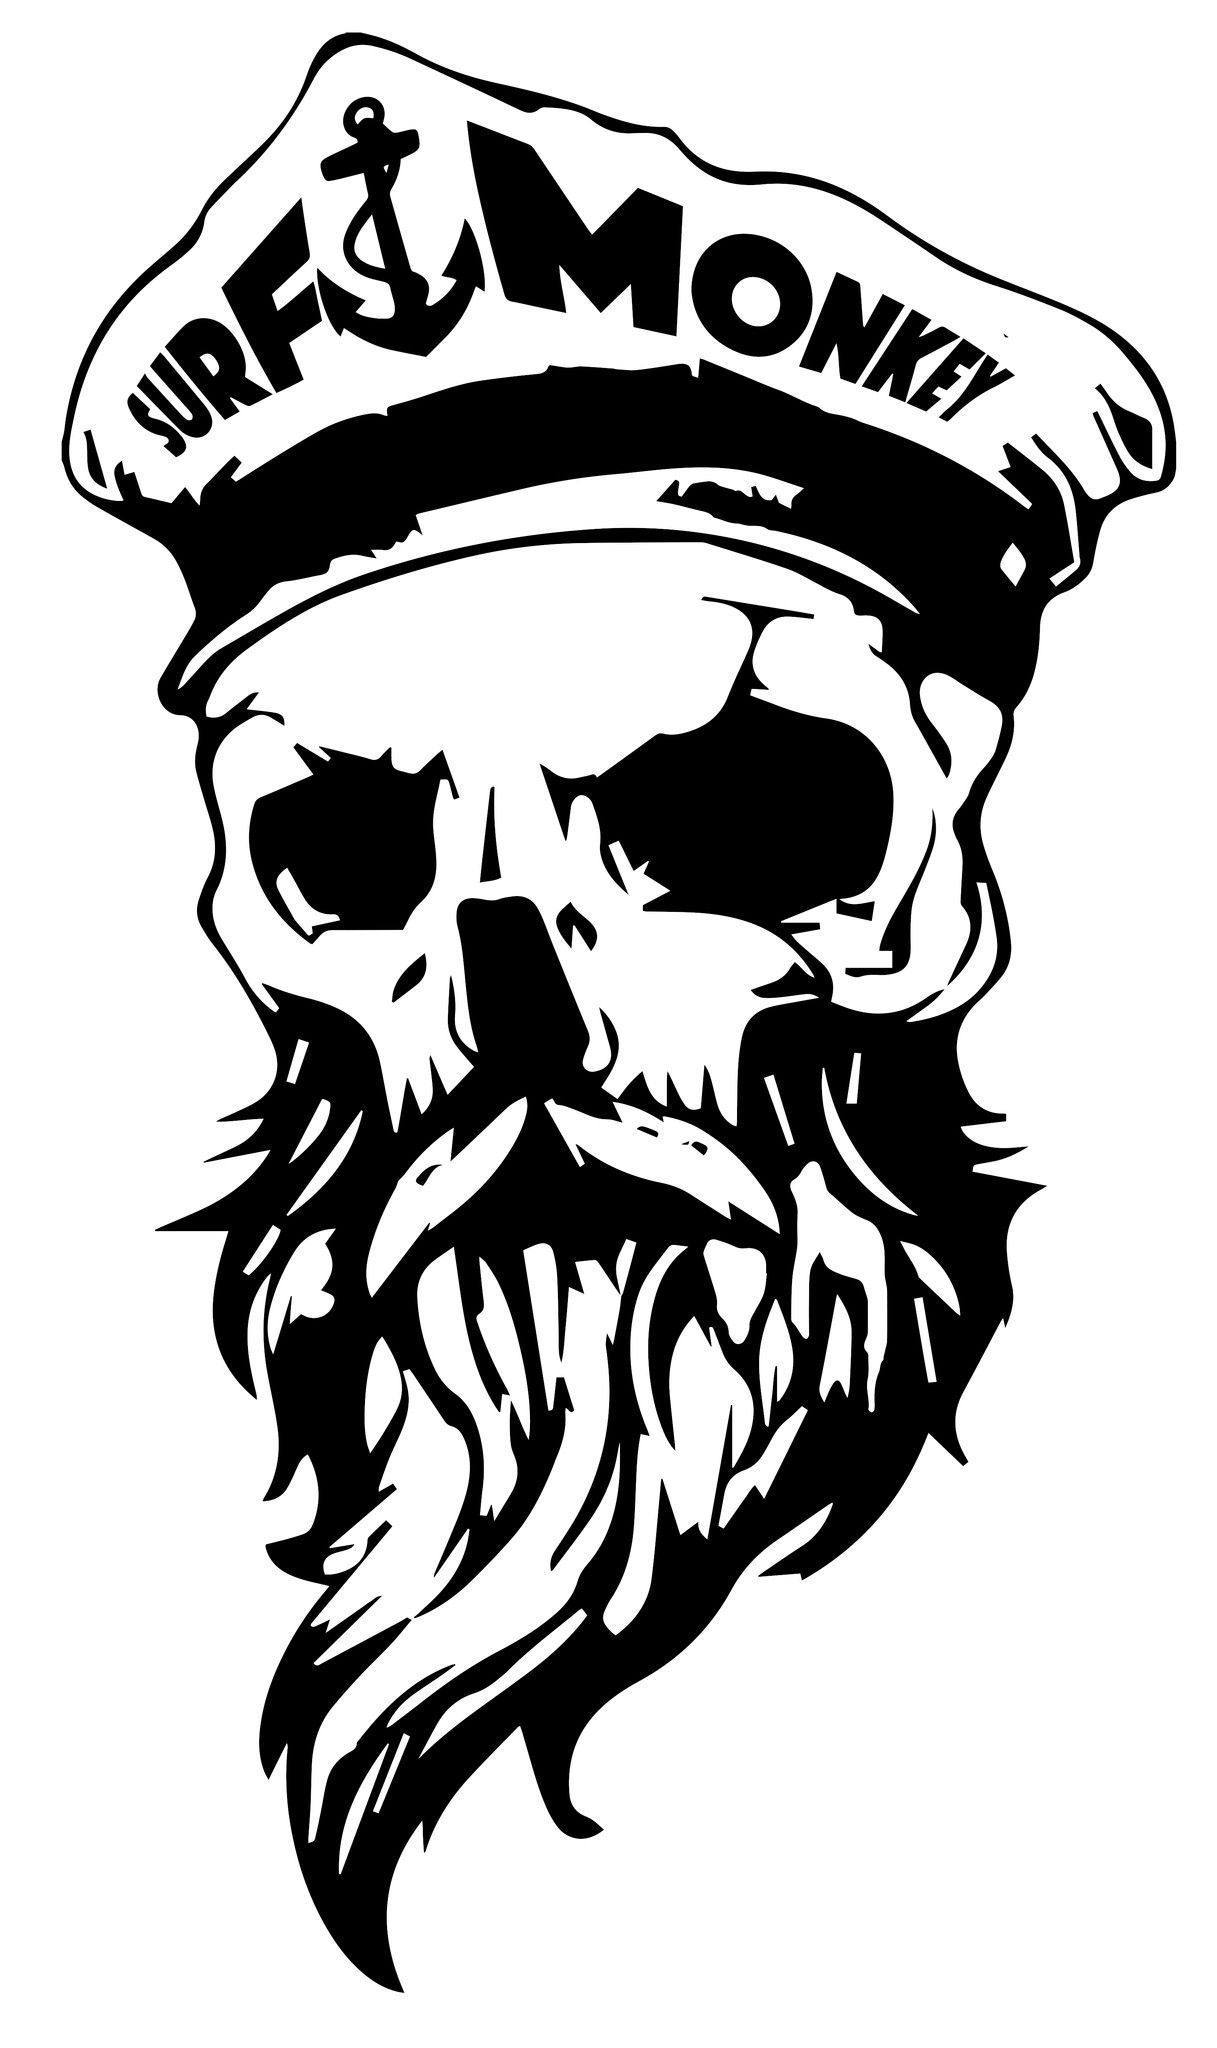 Bearded skull decal sticker surfmonkey beard grooming sticker design skull and bones skull